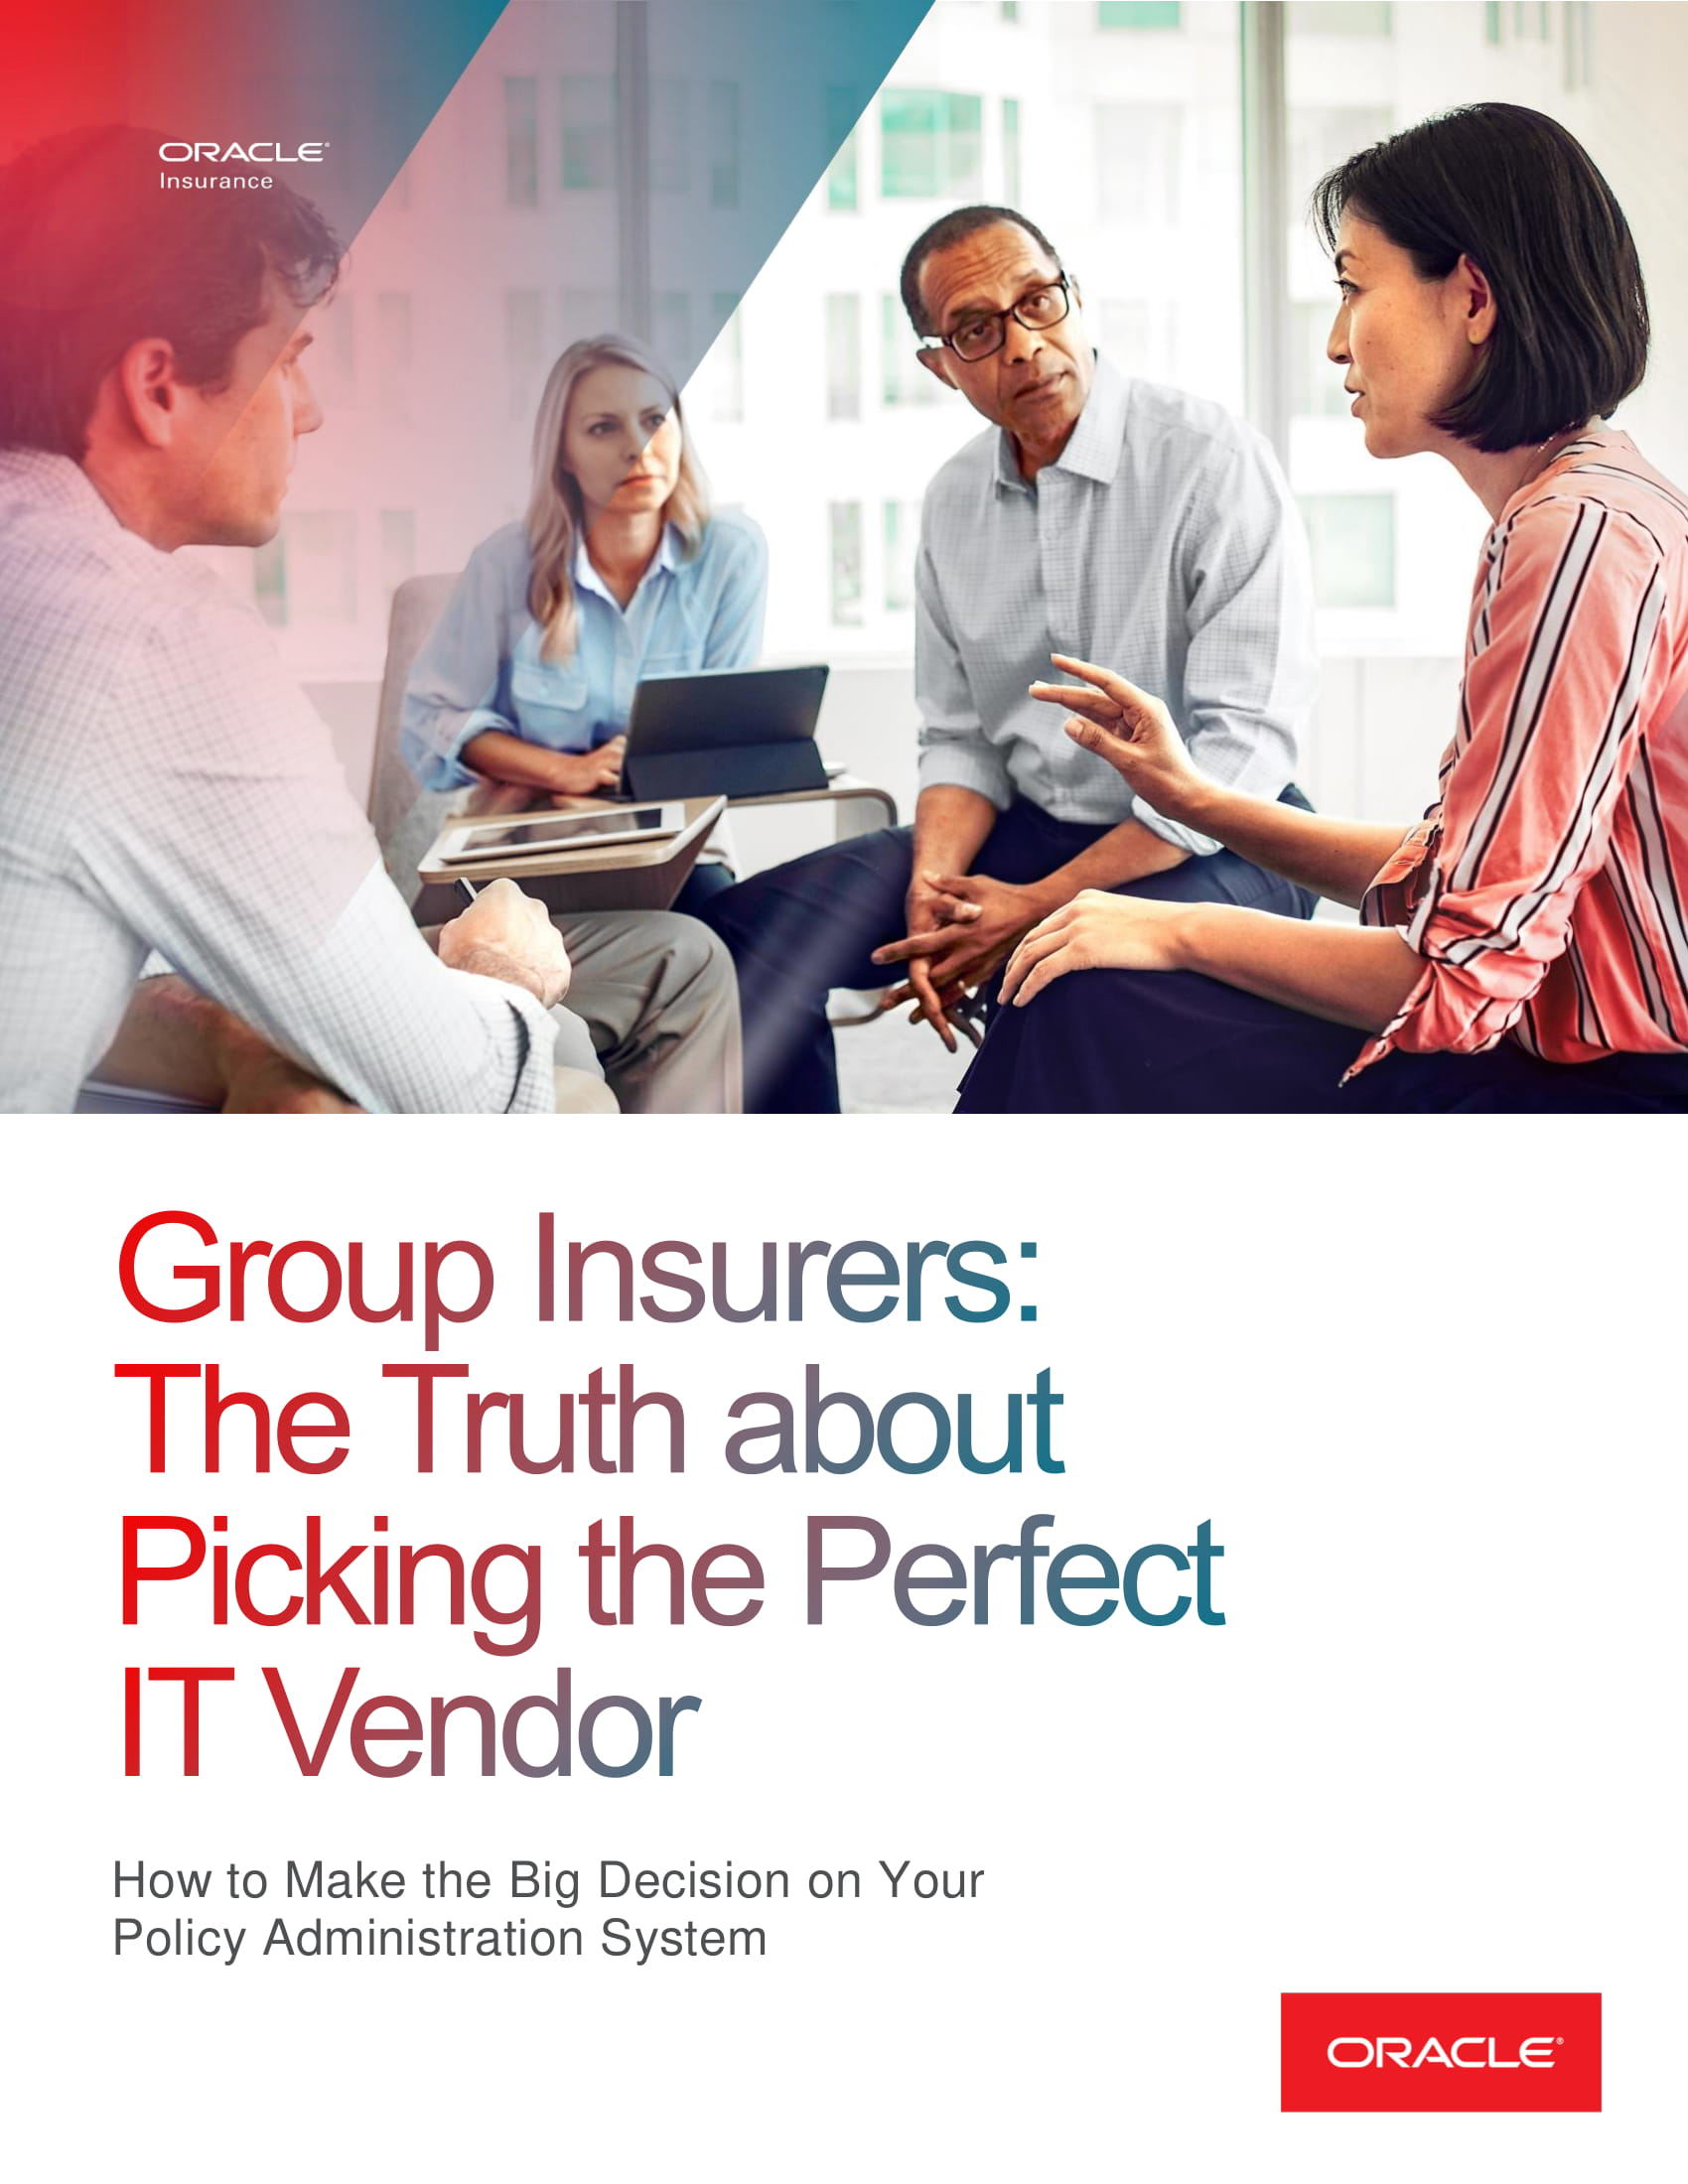 The Truth About Picking the Perfect IT Vendor